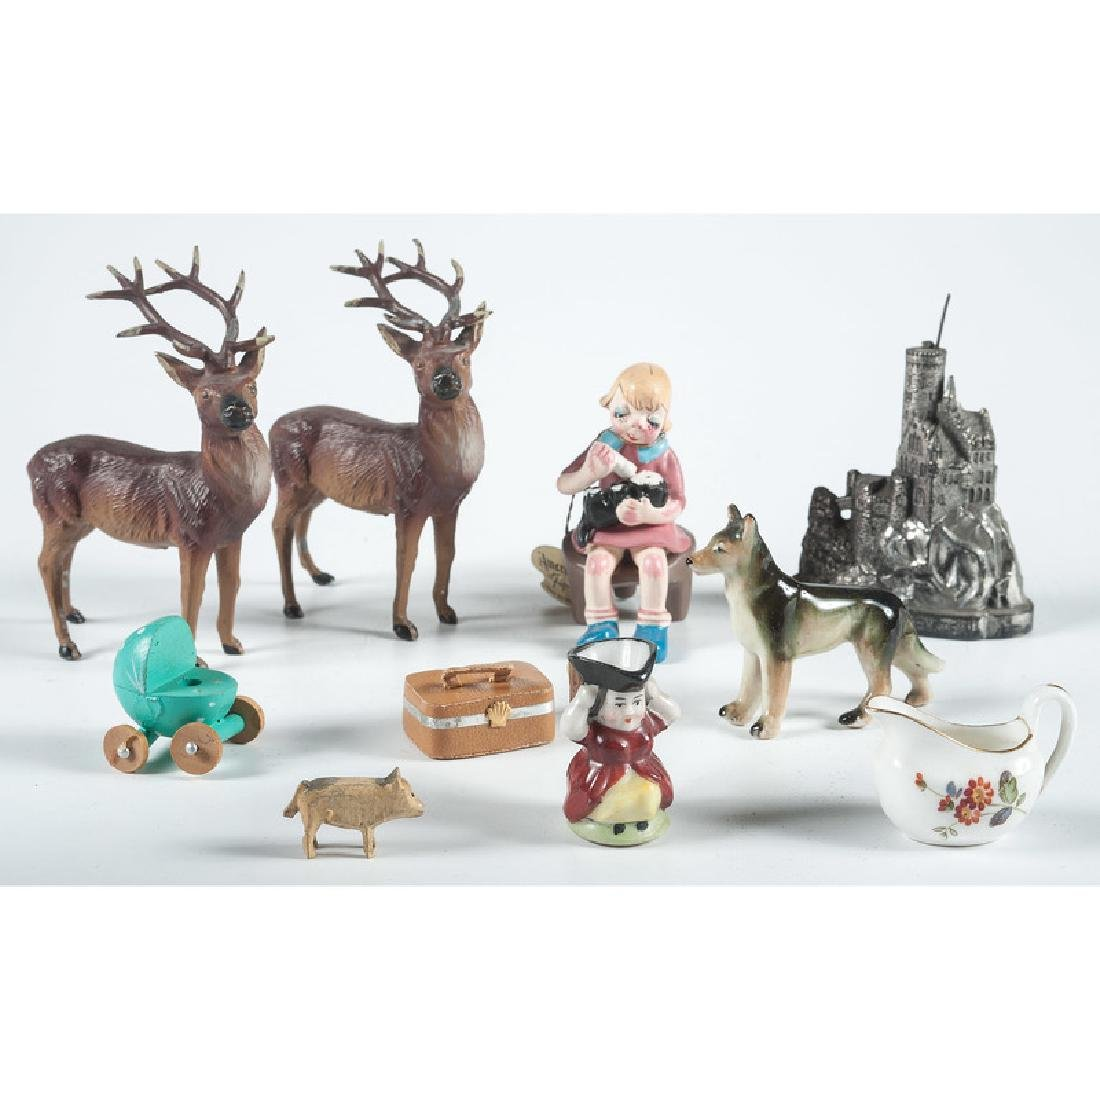 Collection of Miniature Furniture, Toys and Other Items